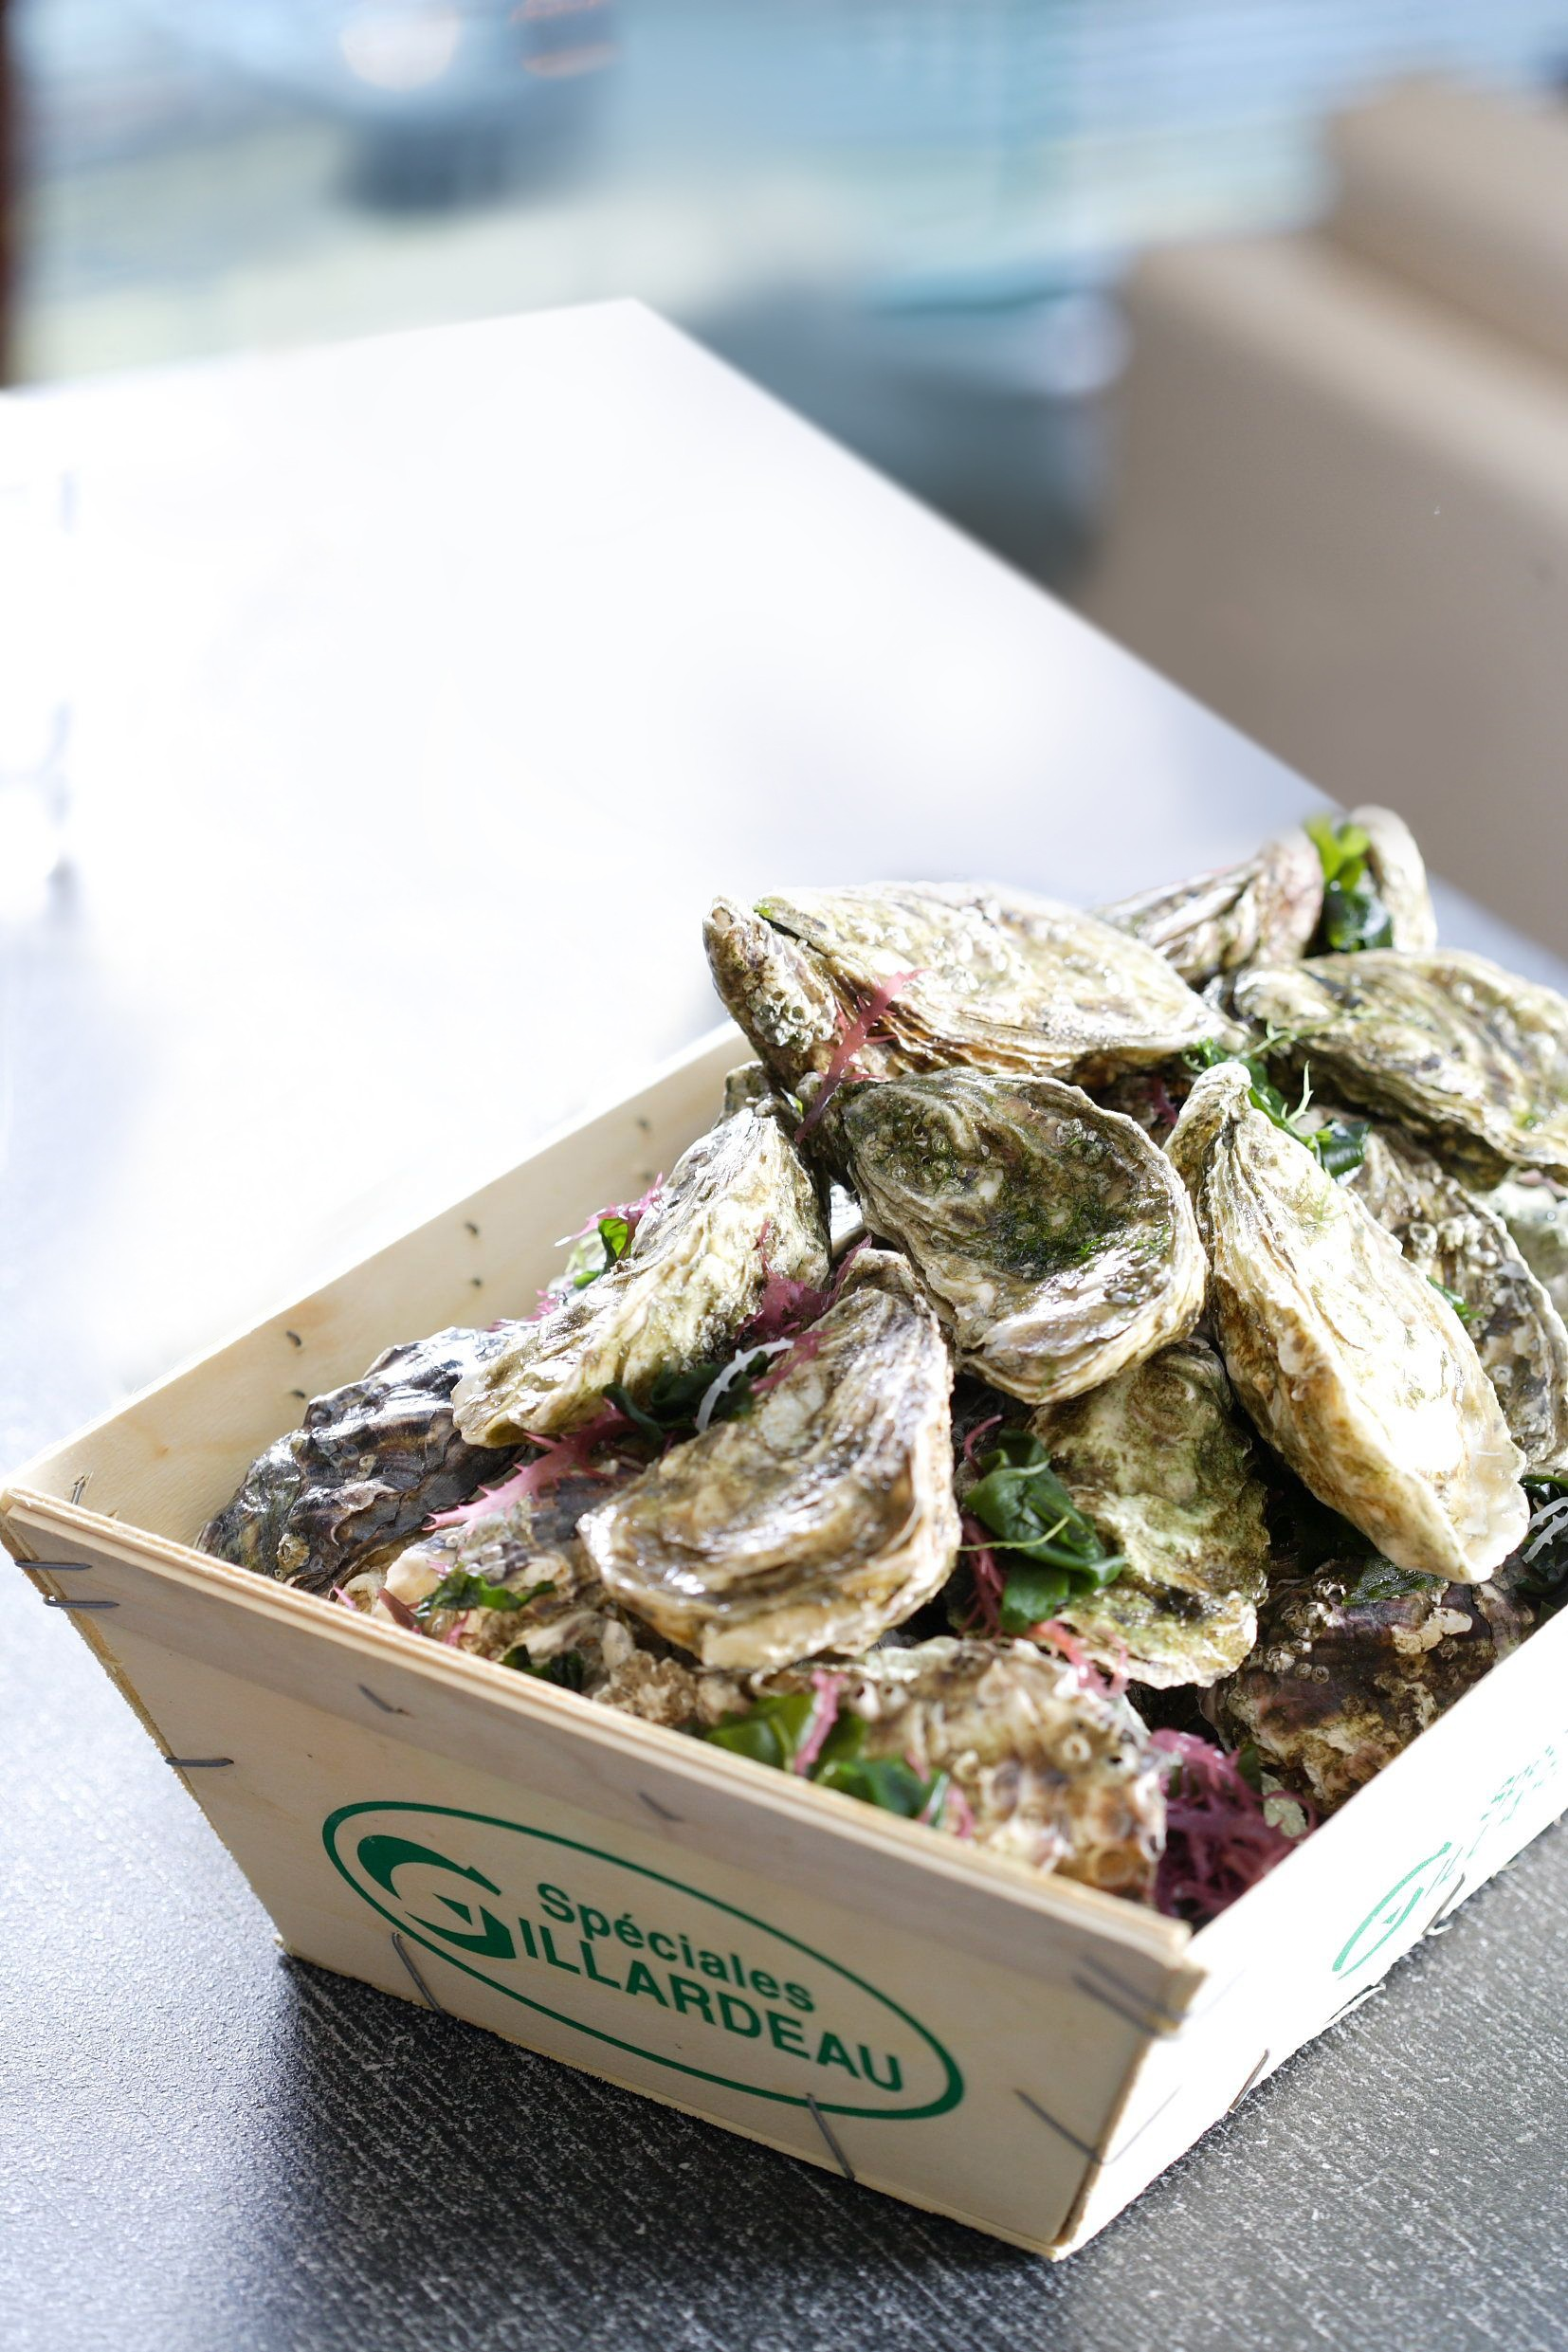 Regent launches oyster feast featuring premium oysters